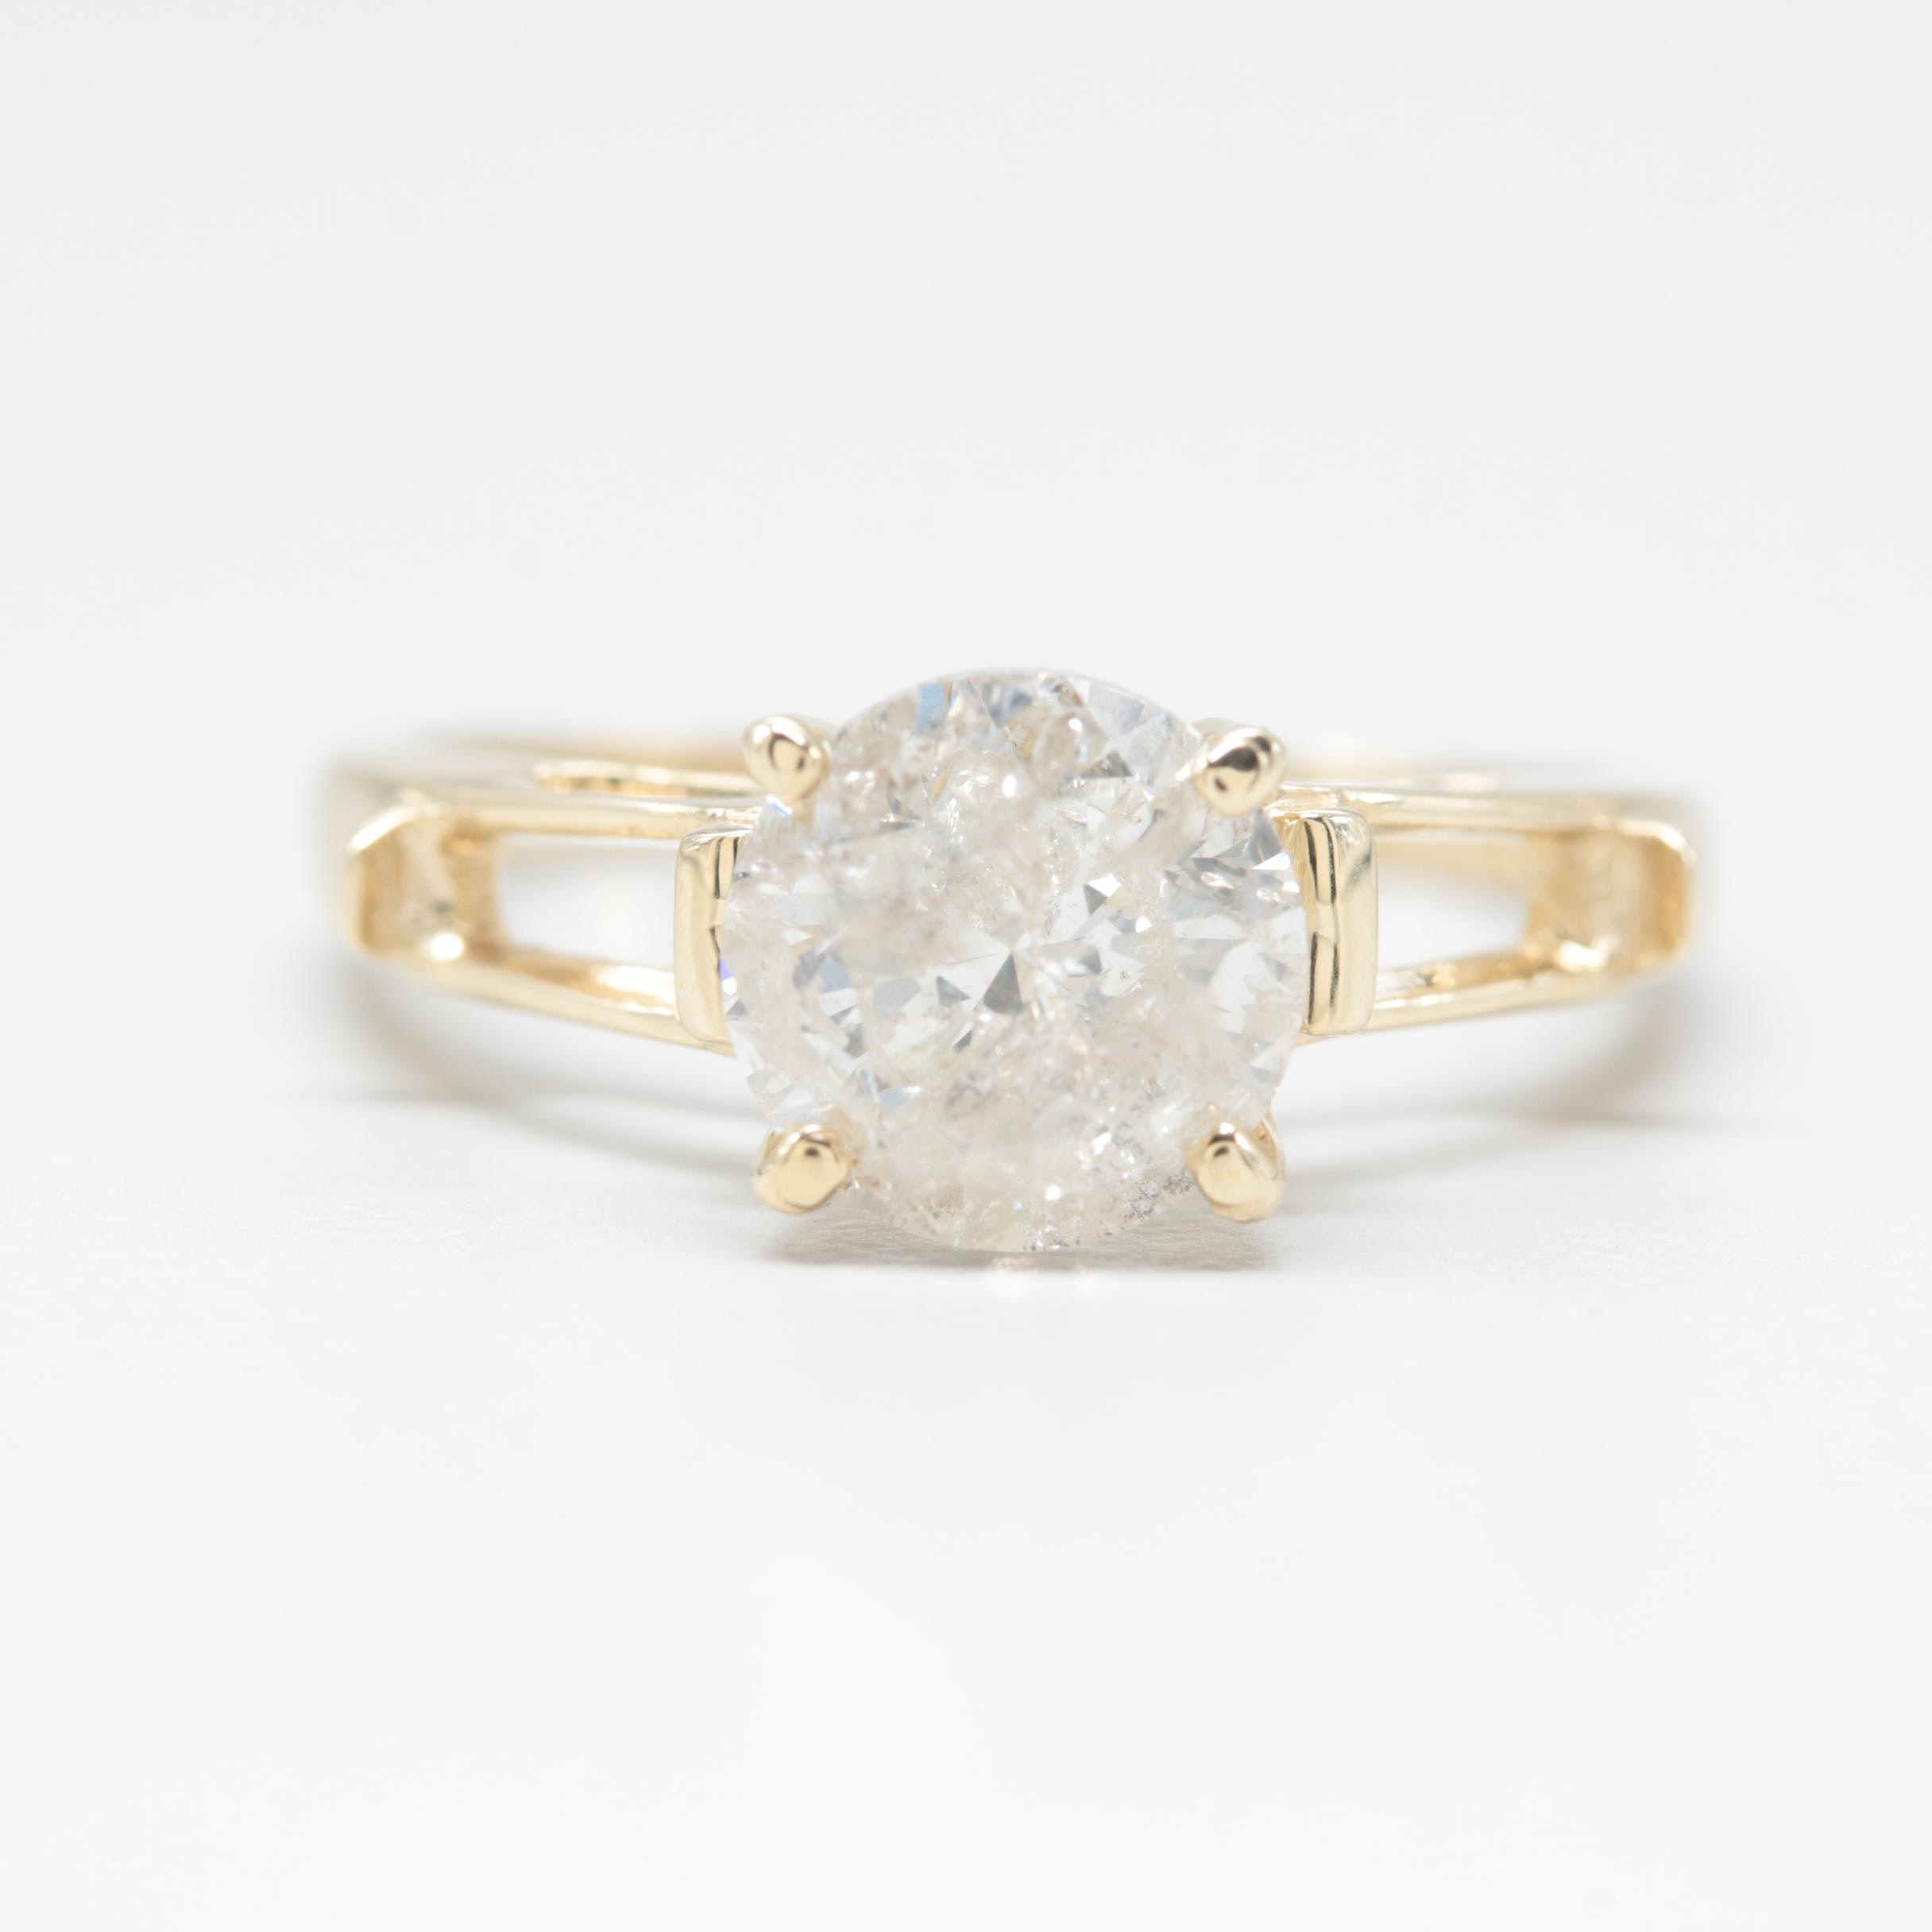 14K Yellow Gold 1.96 CT Diamond Ring Partial Mount